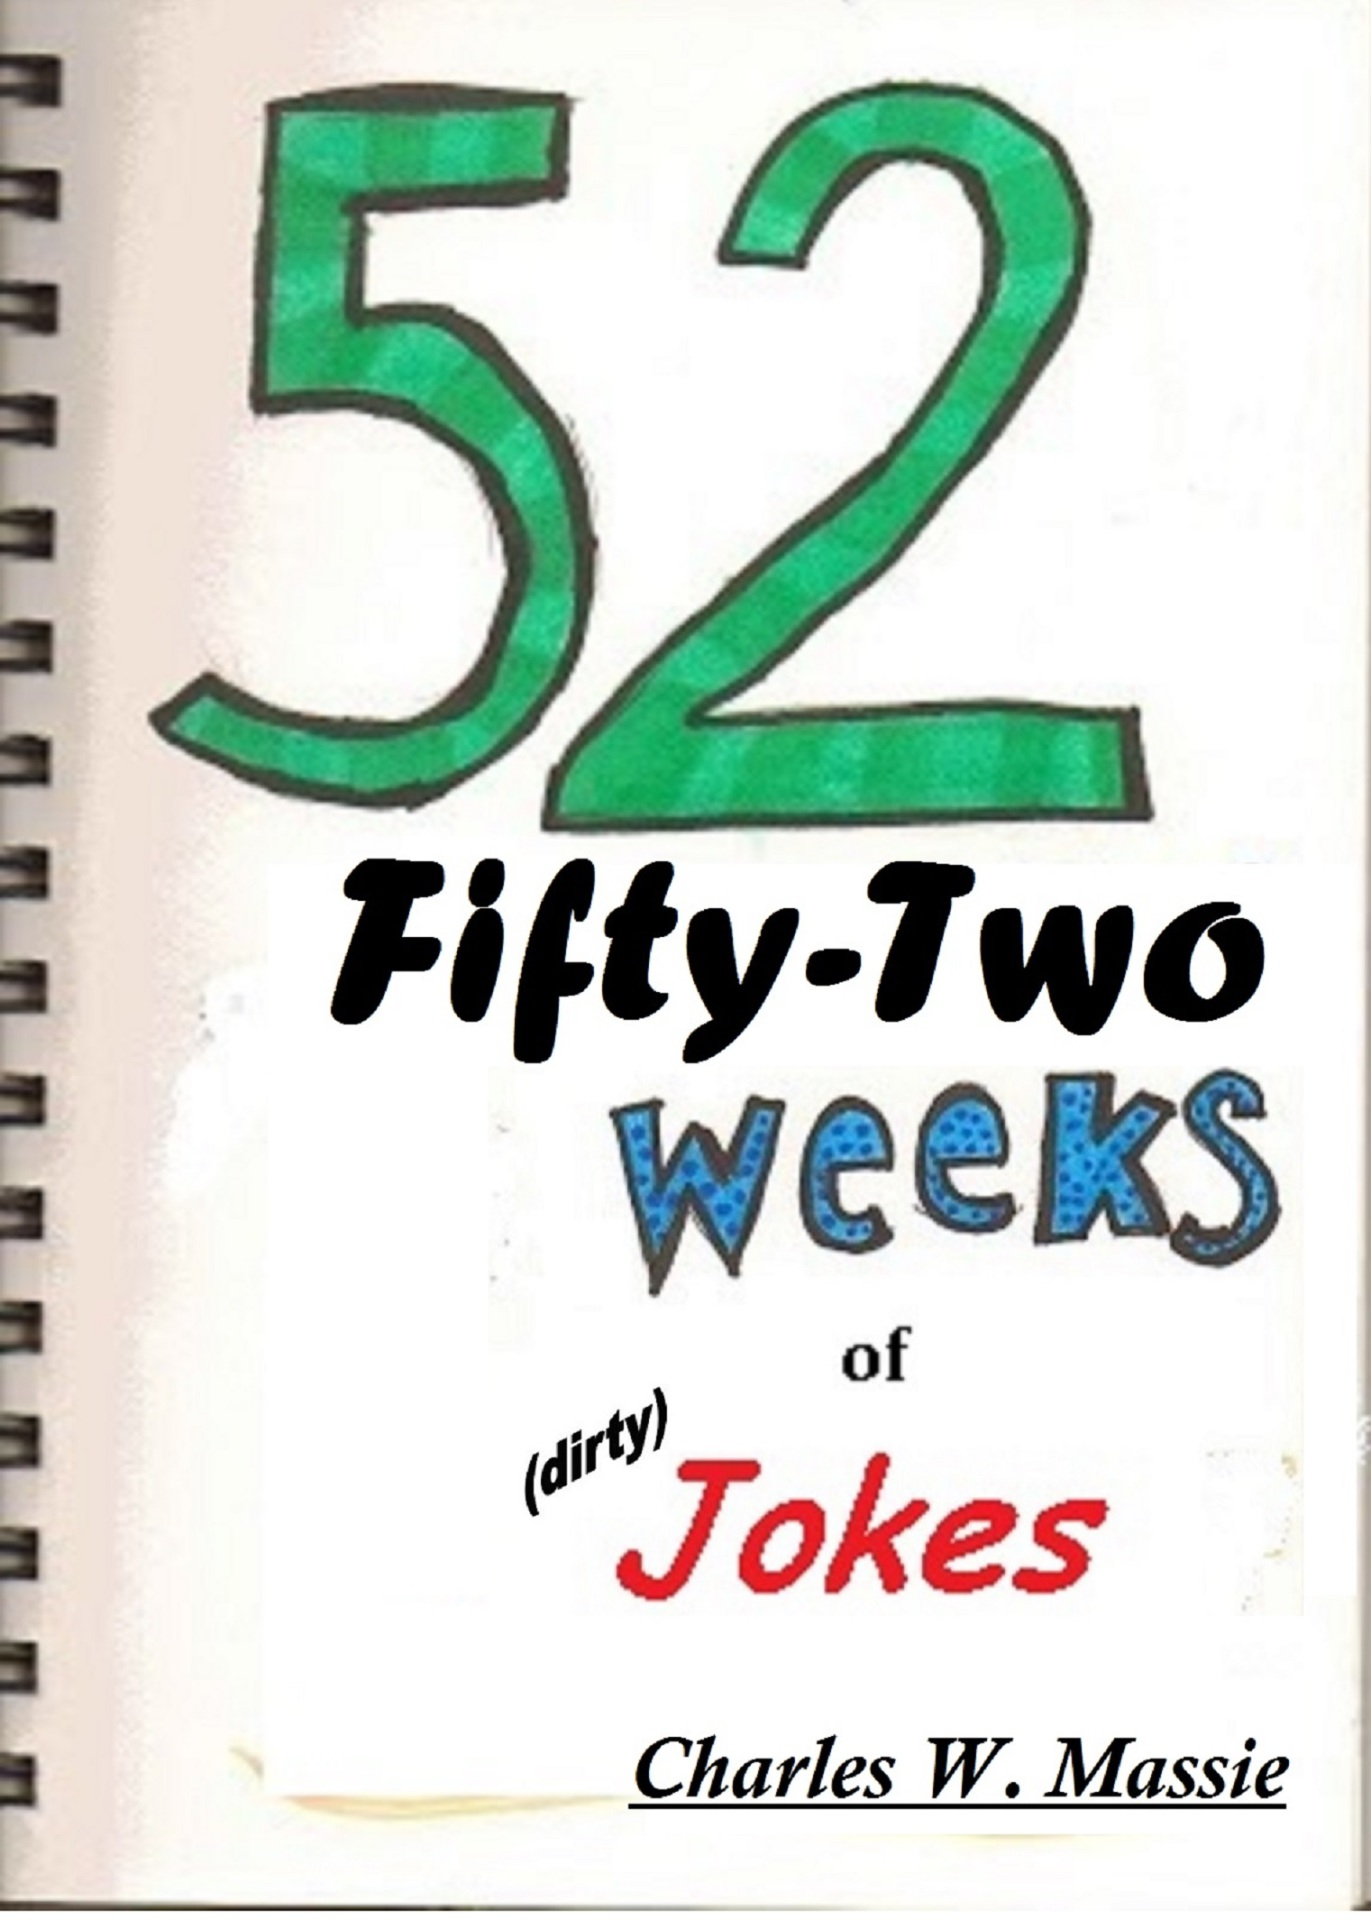 FiftyTwo (52) Weeks of Jokes cover